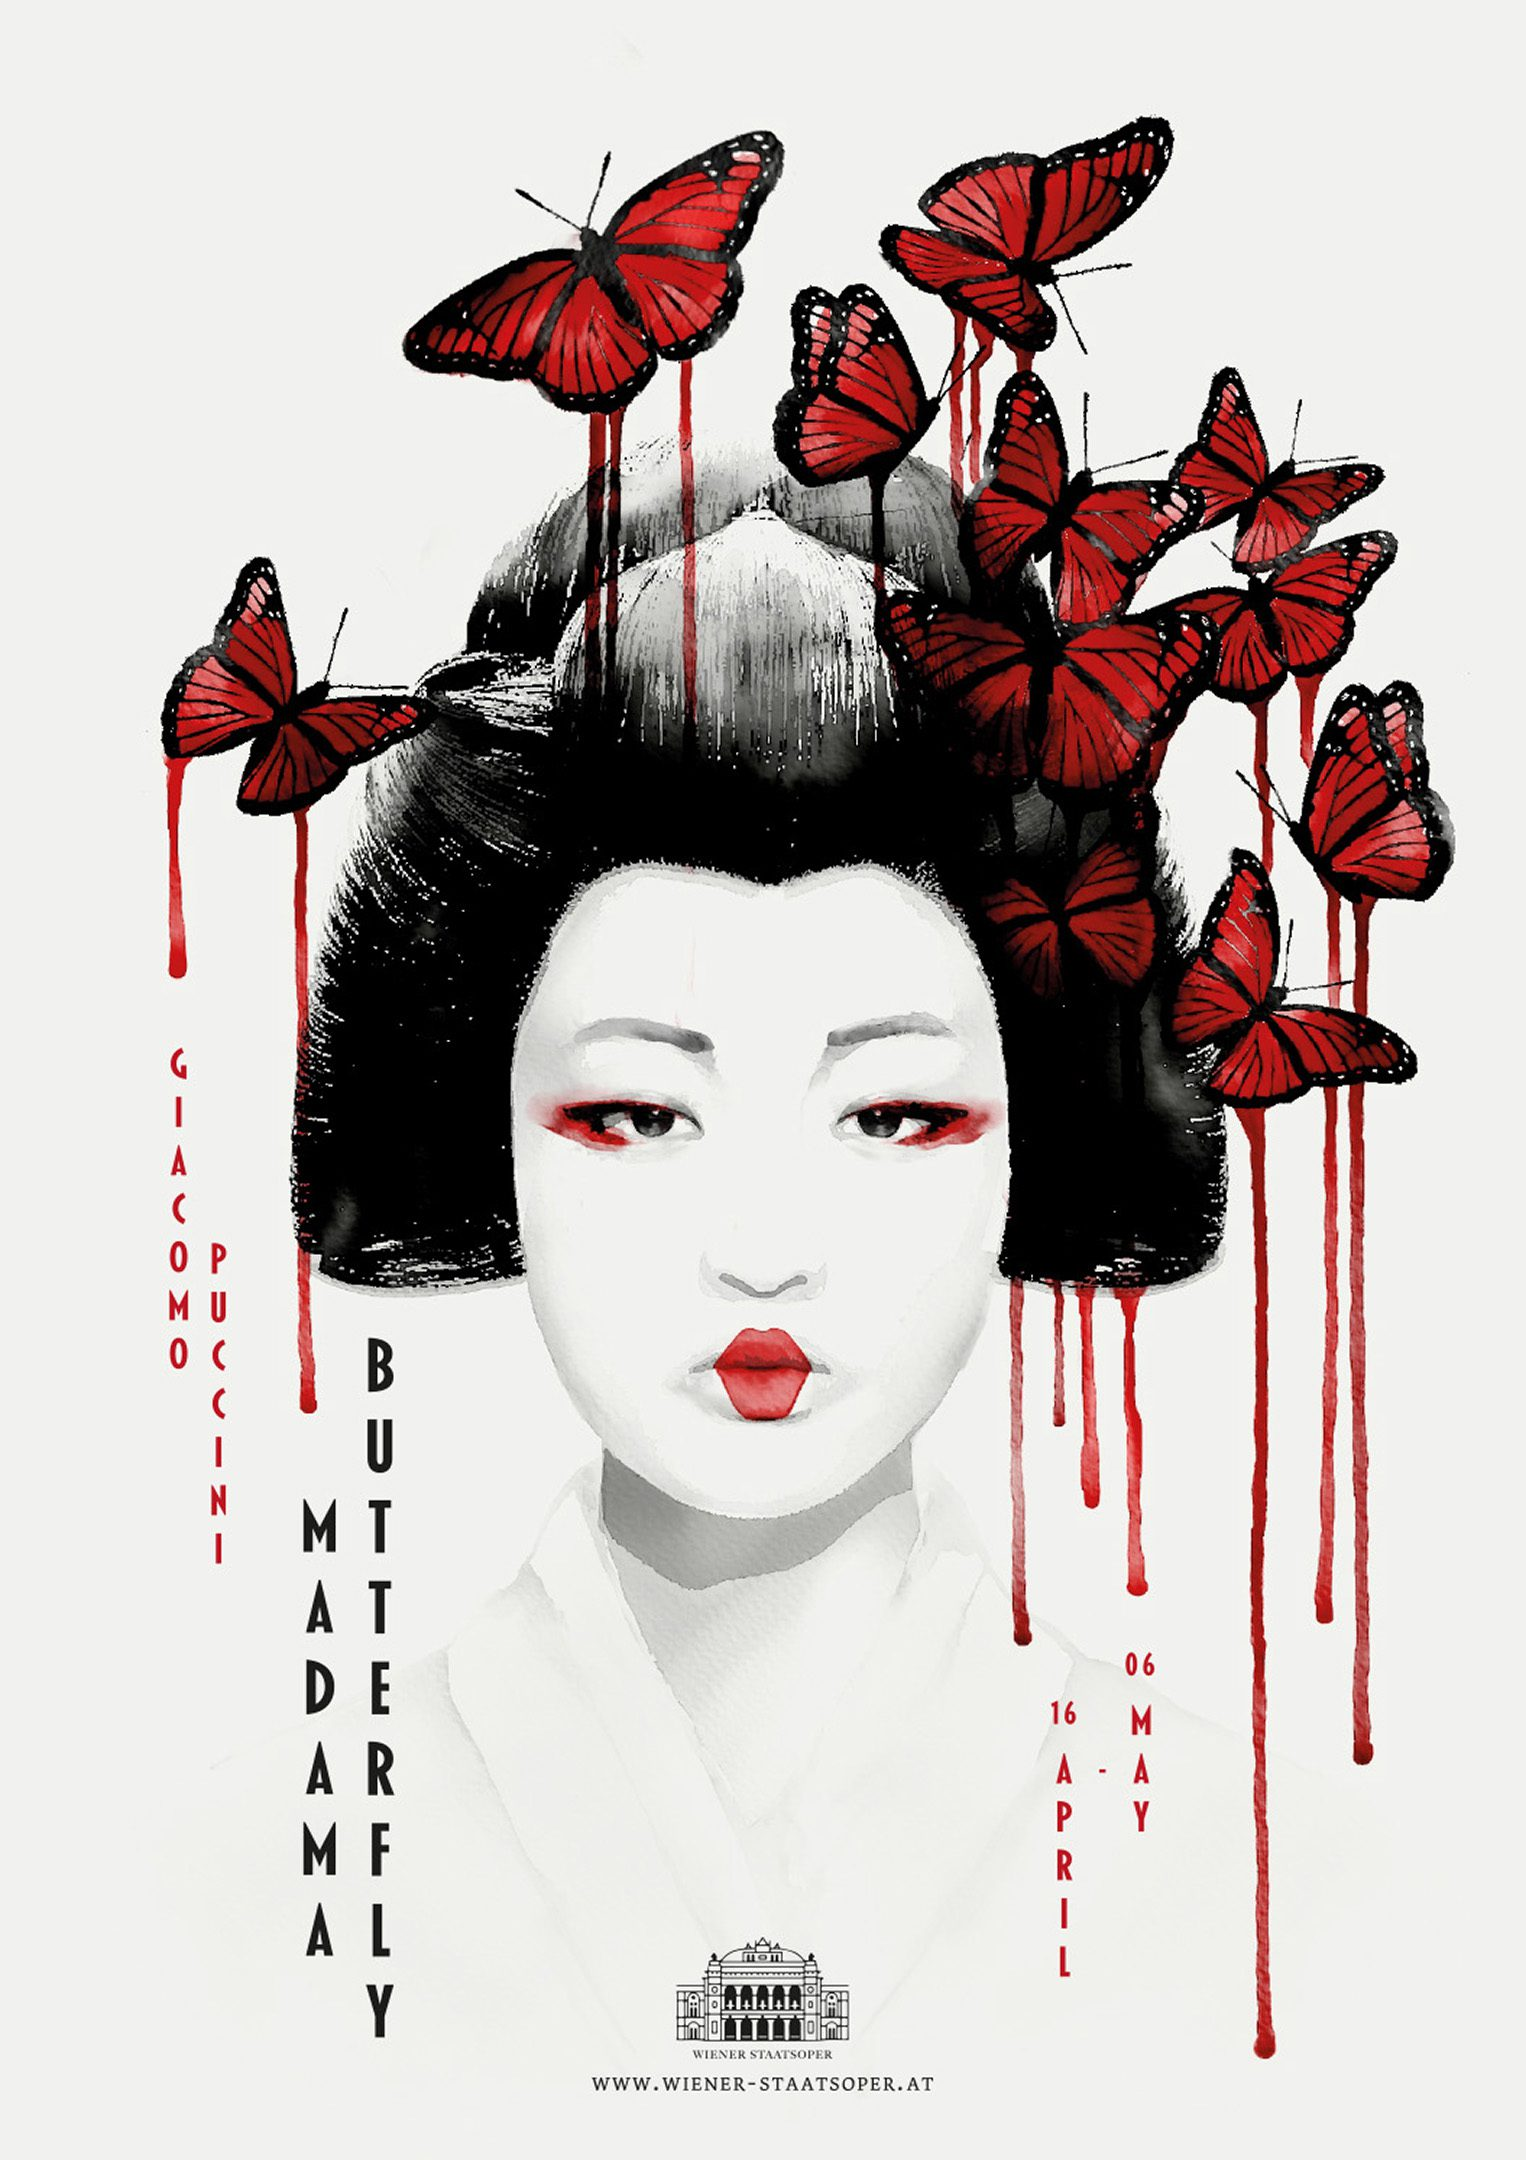 madama butterfly poster design